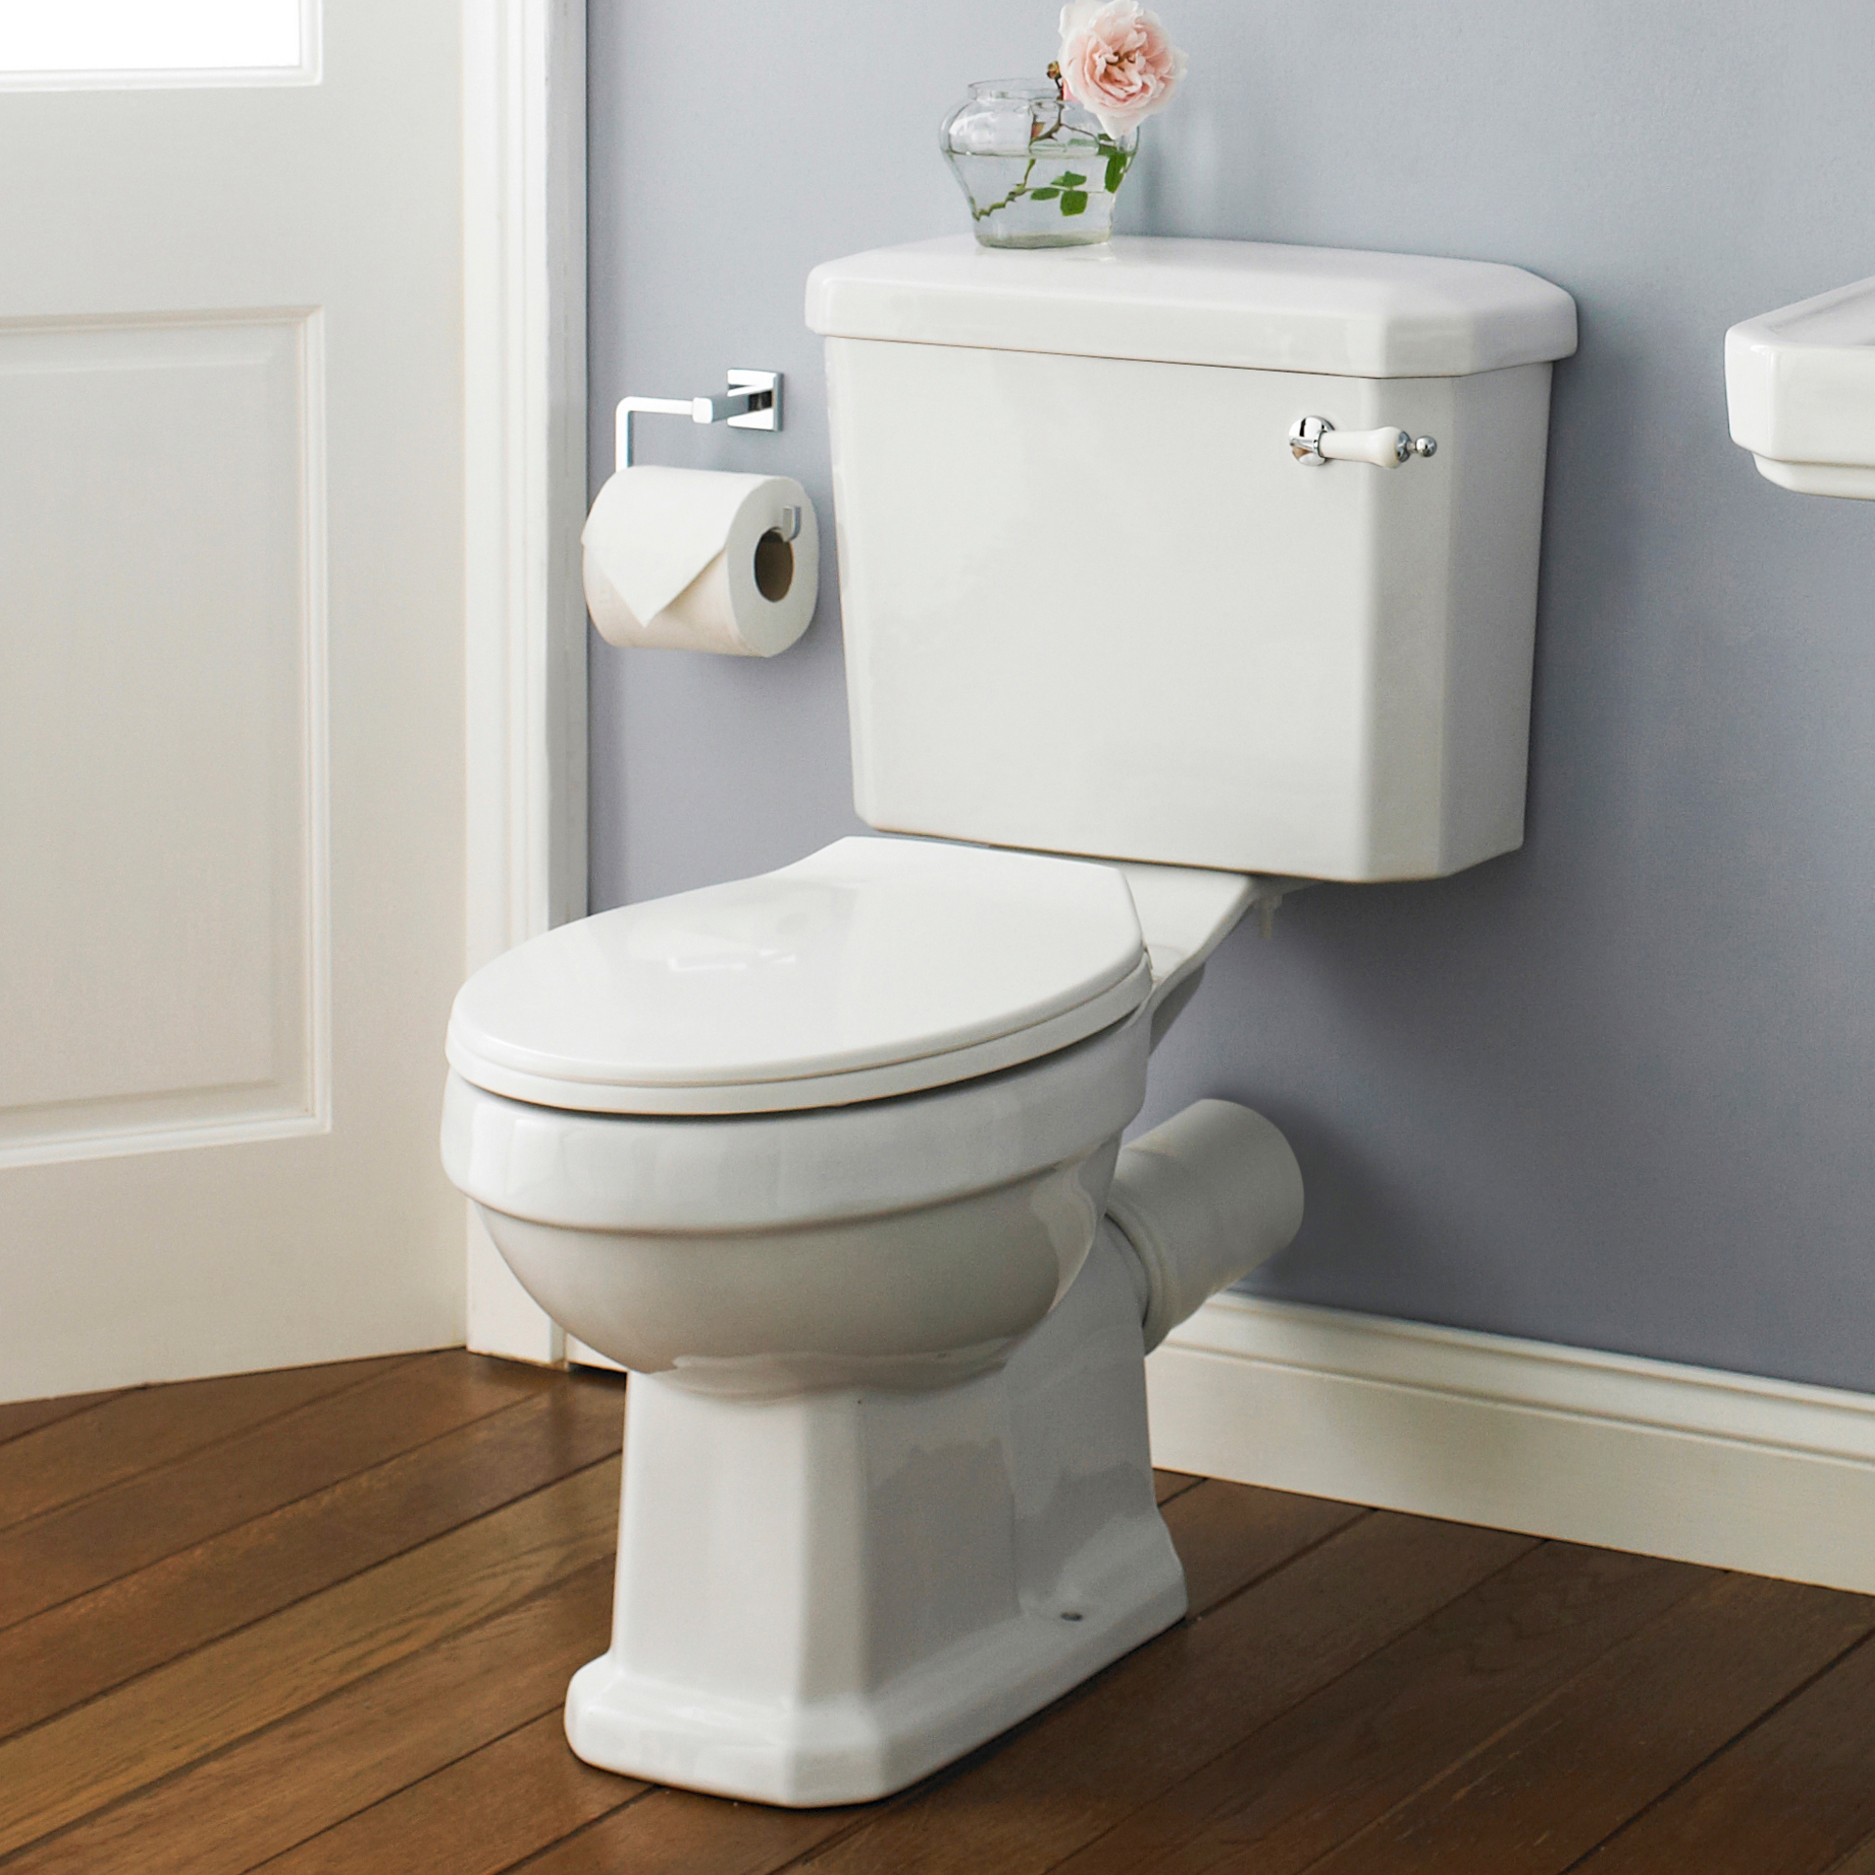 Bathroom Toilets For Sale Bella Bathrooms